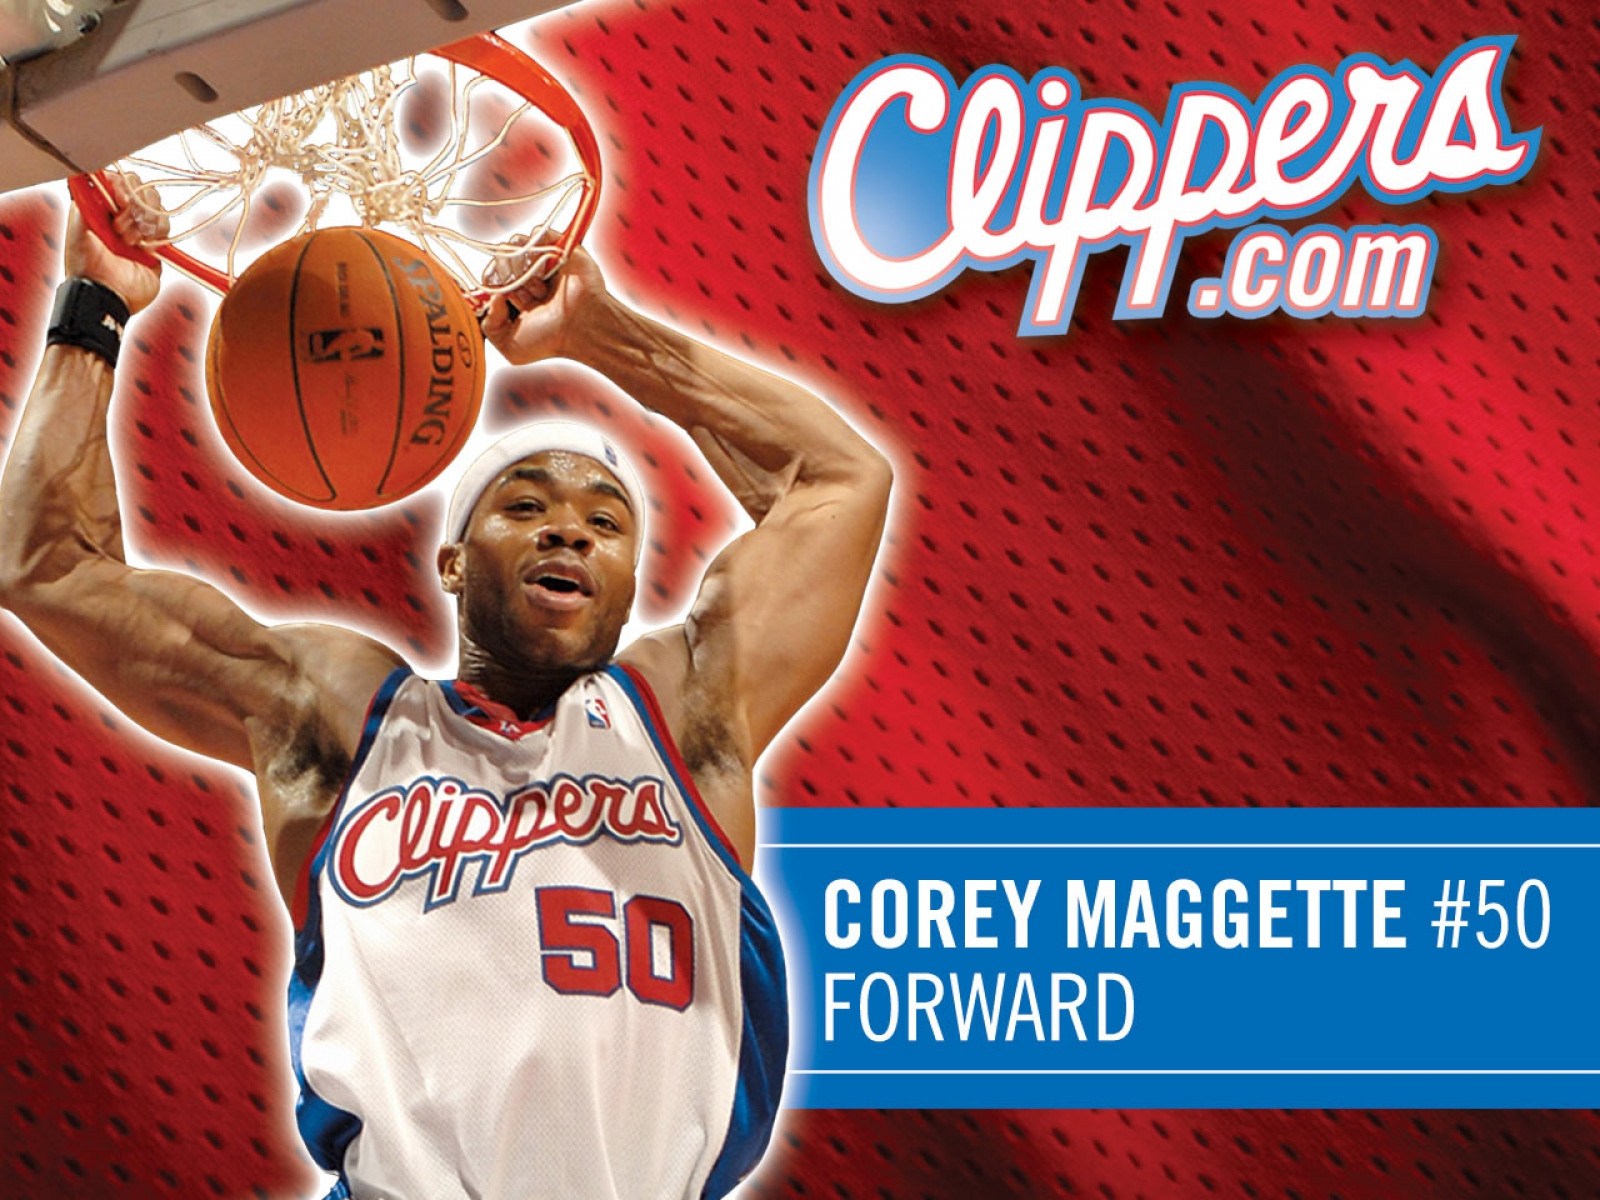 http://3.bp.blogspot.com/-AfHES5OMZ8o/T9Y_oHsuSpI/AAAAAAAADfg/nmVP5jf4Mrc/s1600/Corey+Maggette+Wallpapers+%25281%2529.jpg